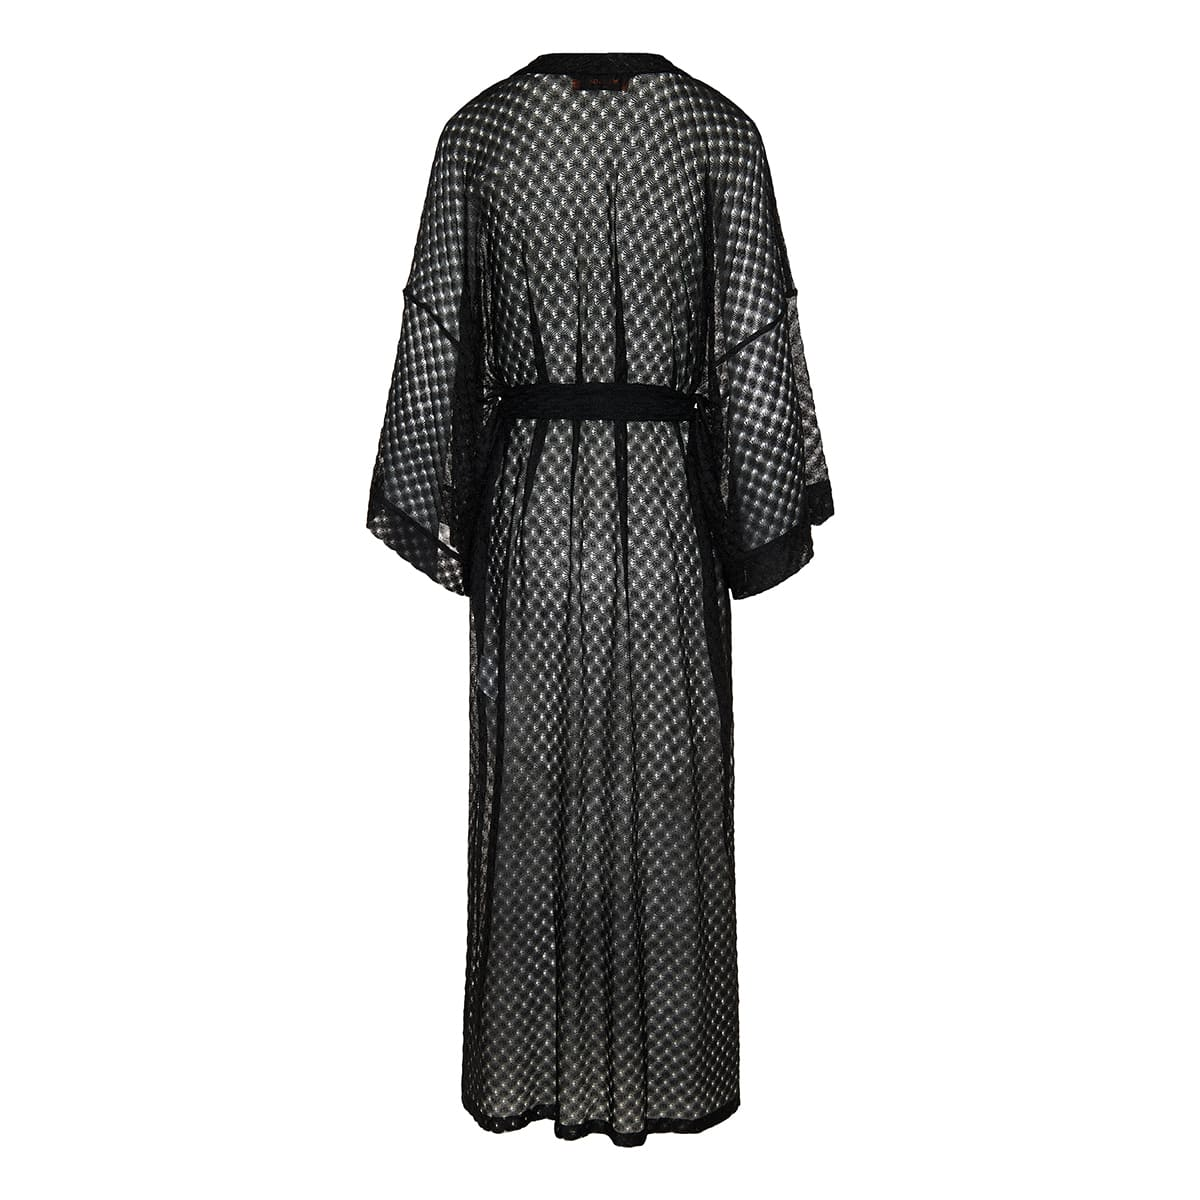 Knitted long robe cover-up